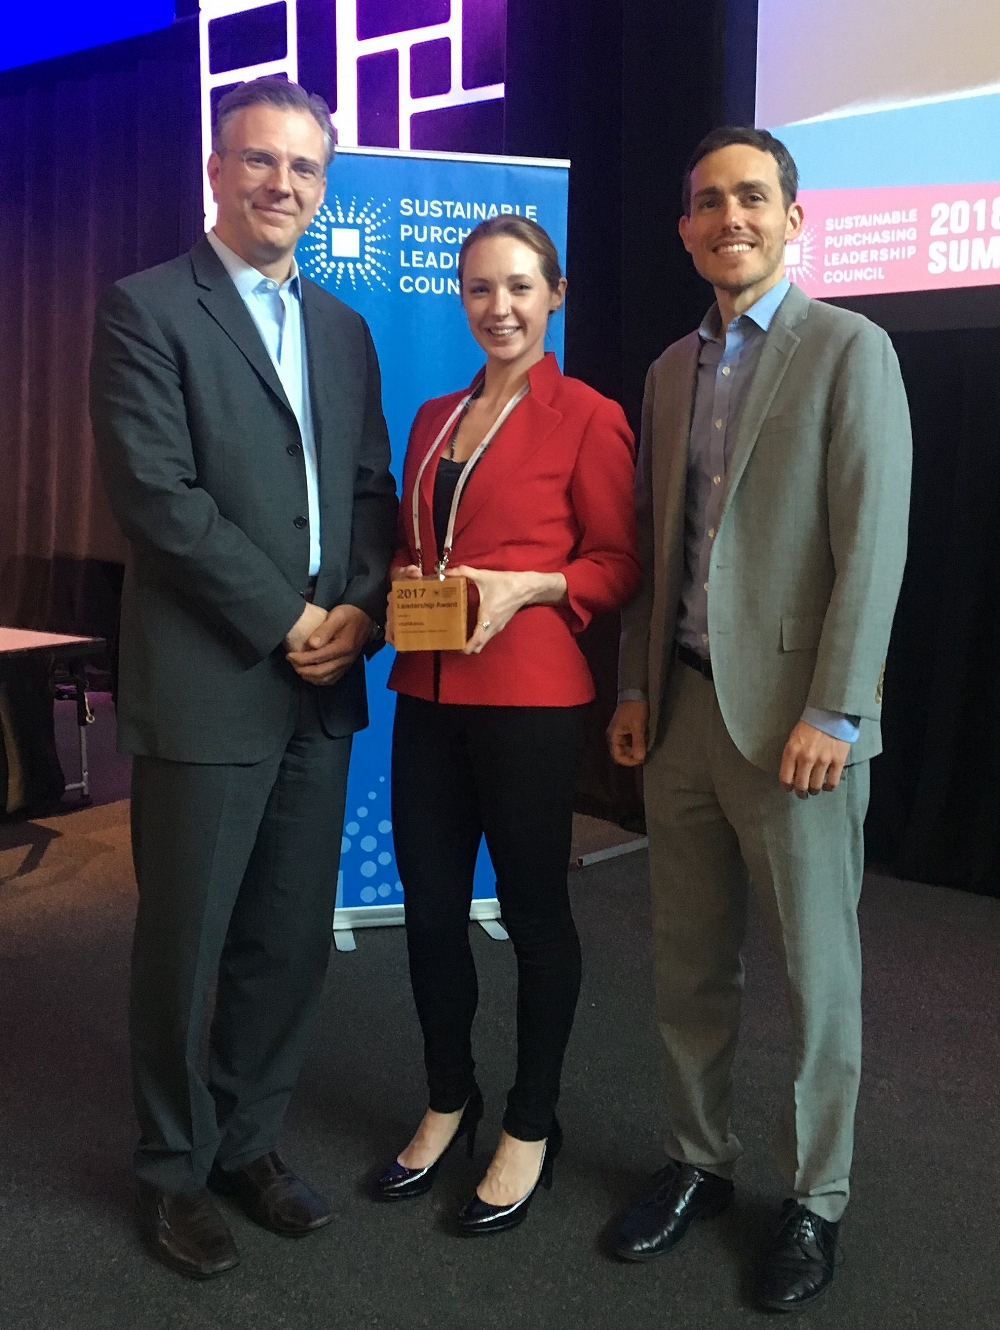 - VitalMetrics participated in the 2018 Sustainable Purchasing Leadership Council Summit in Minneapolis! Our Head of CDP Services and lead data analyst, Summer Broeckx-Smith, attended the summit on behalf of VitalMetrics to receive a Leadership Award for our work on the State Spend Analysis Pilot Project commissioned by the state of California's Department of General Services for fiscal years 2012-2015.Read more about the project here.